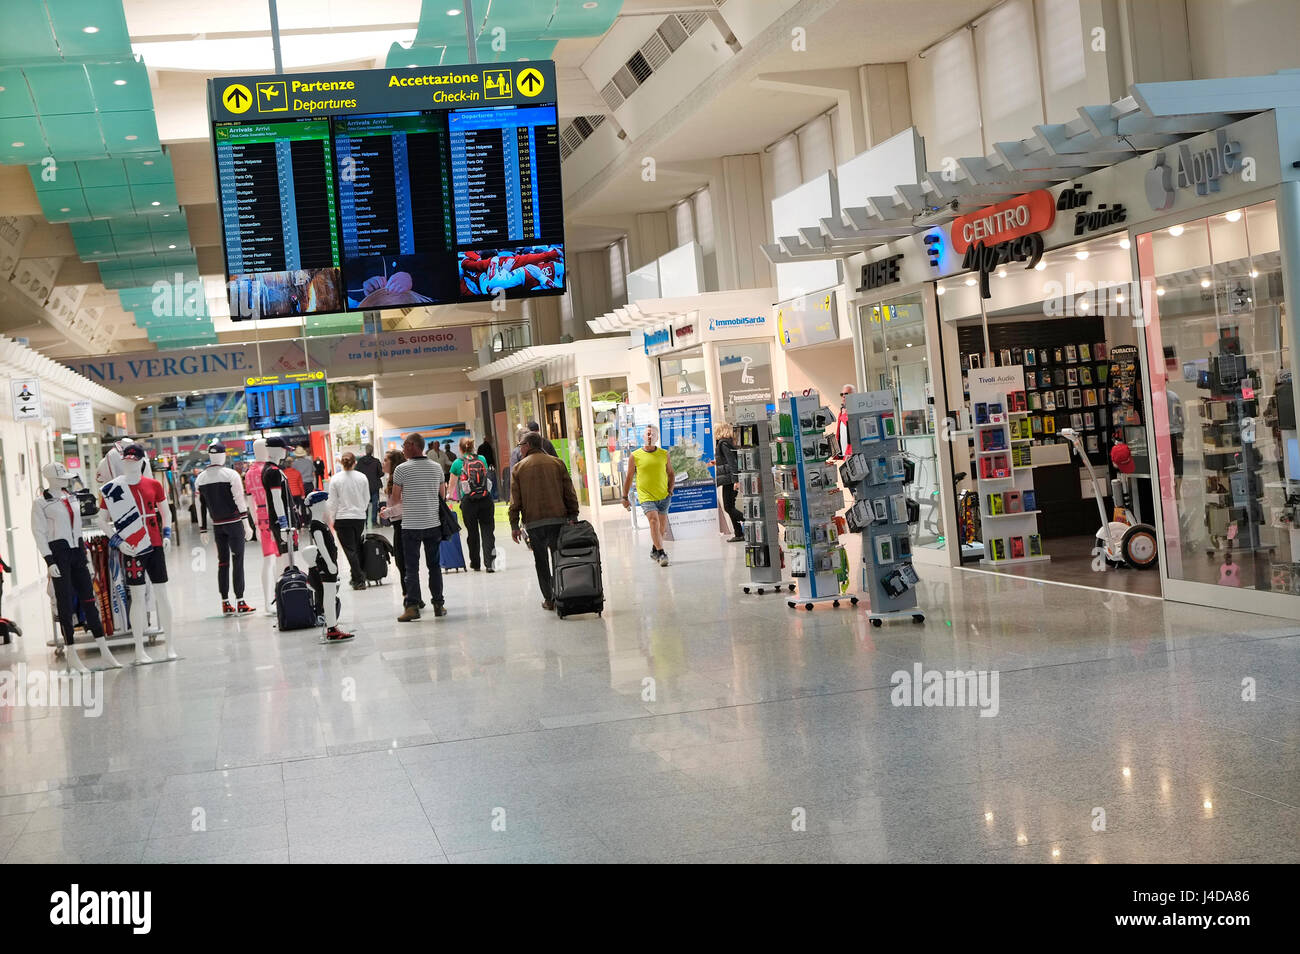 interior of olbia airport, sardinia, italy - Stock Image